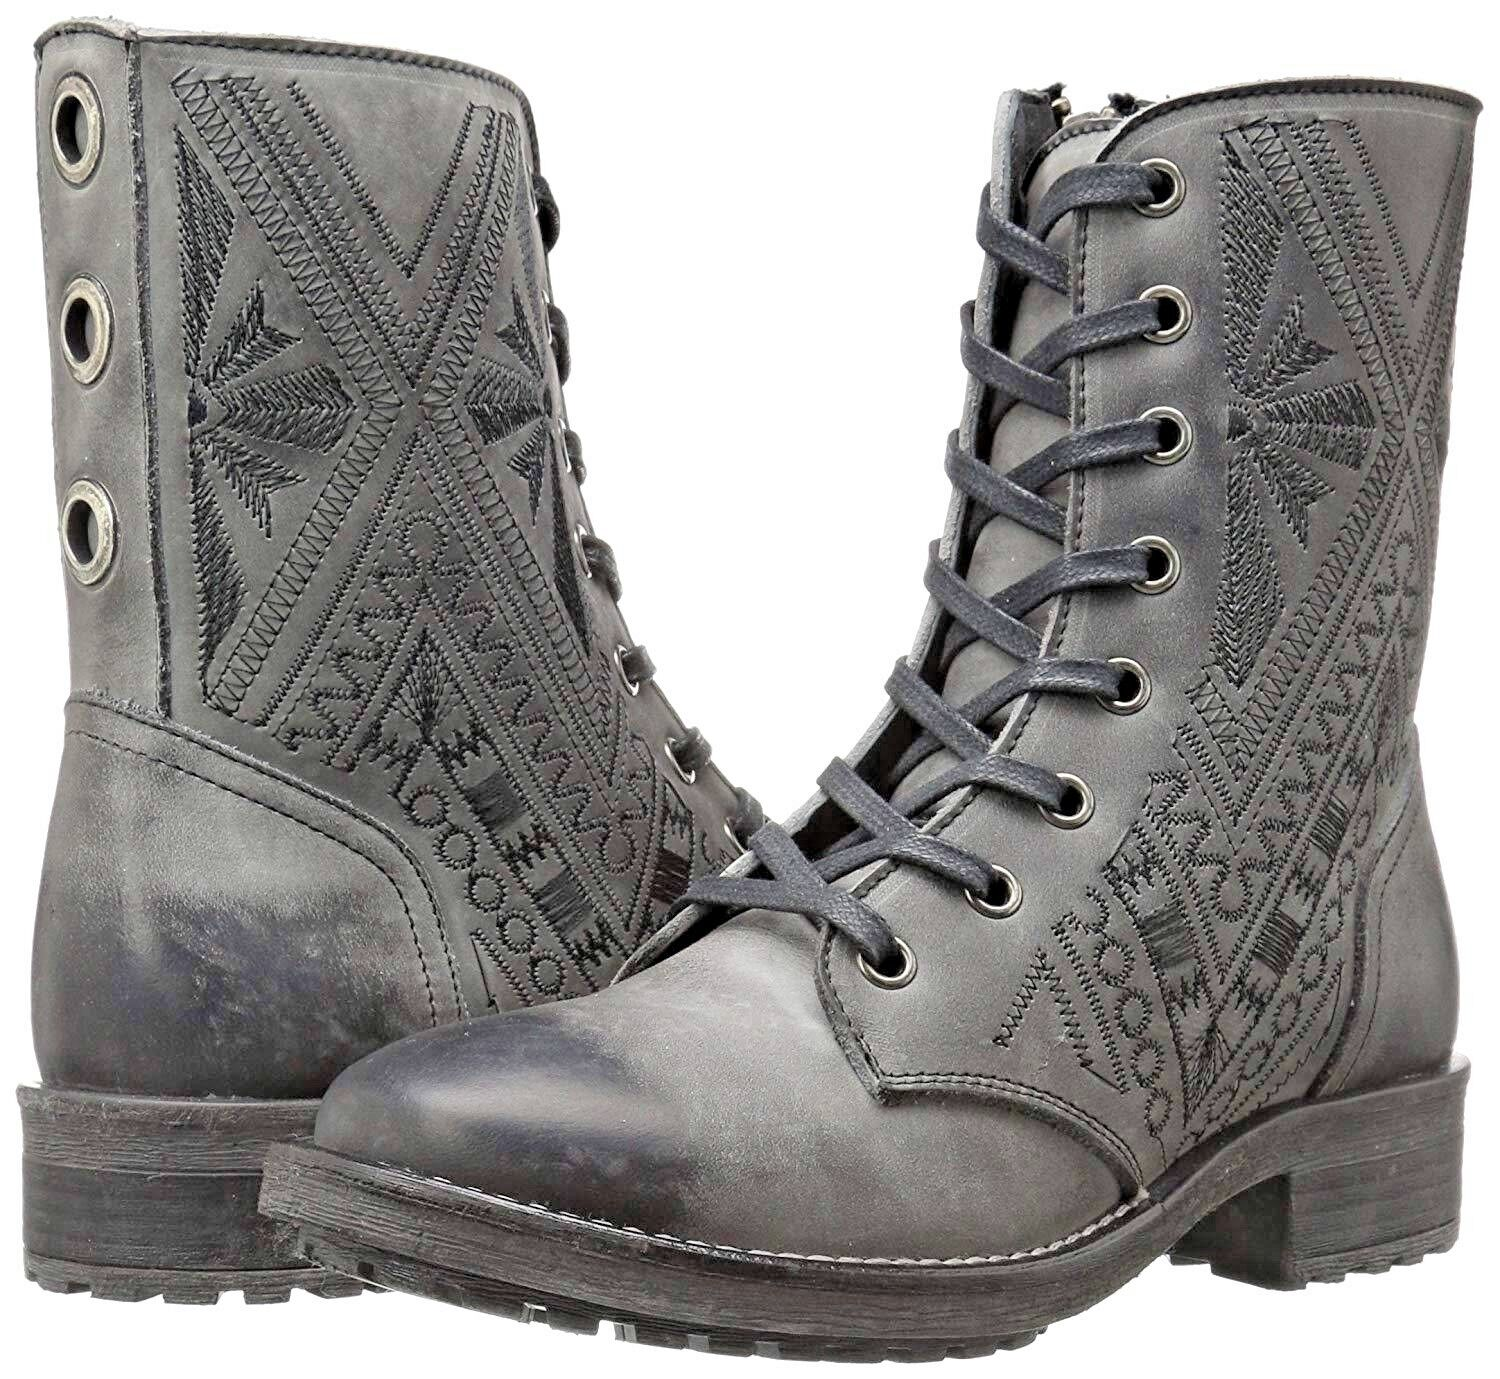 Coolway CORS donna's Dimensione 6M grigio Embroiderosso Leather Grommet Combat stivali New